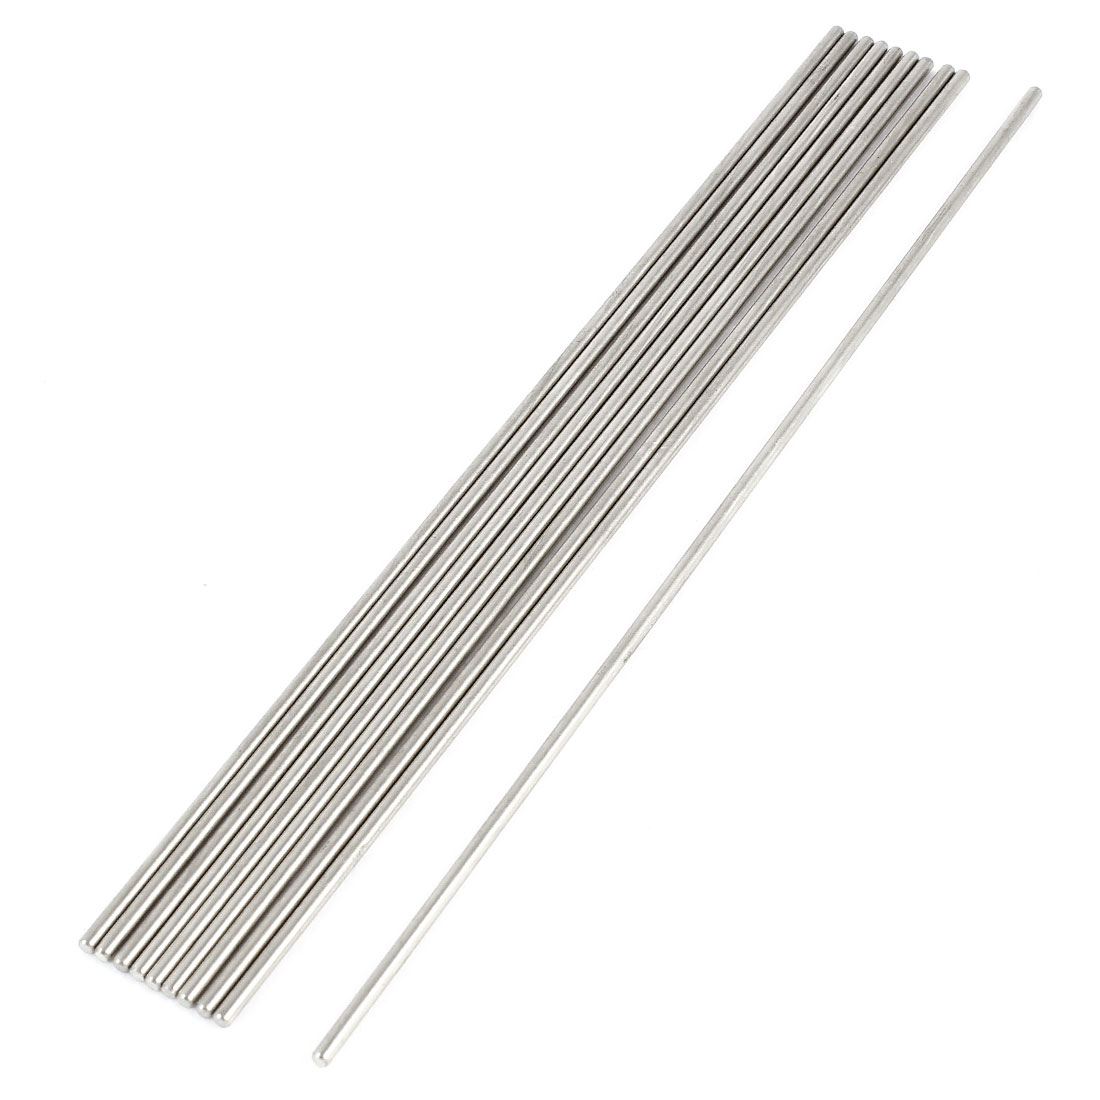 DIY Car RC Helicopter Model Stainless Steel Round Axles Rod Bar 2mmx160mm 10 Pcs